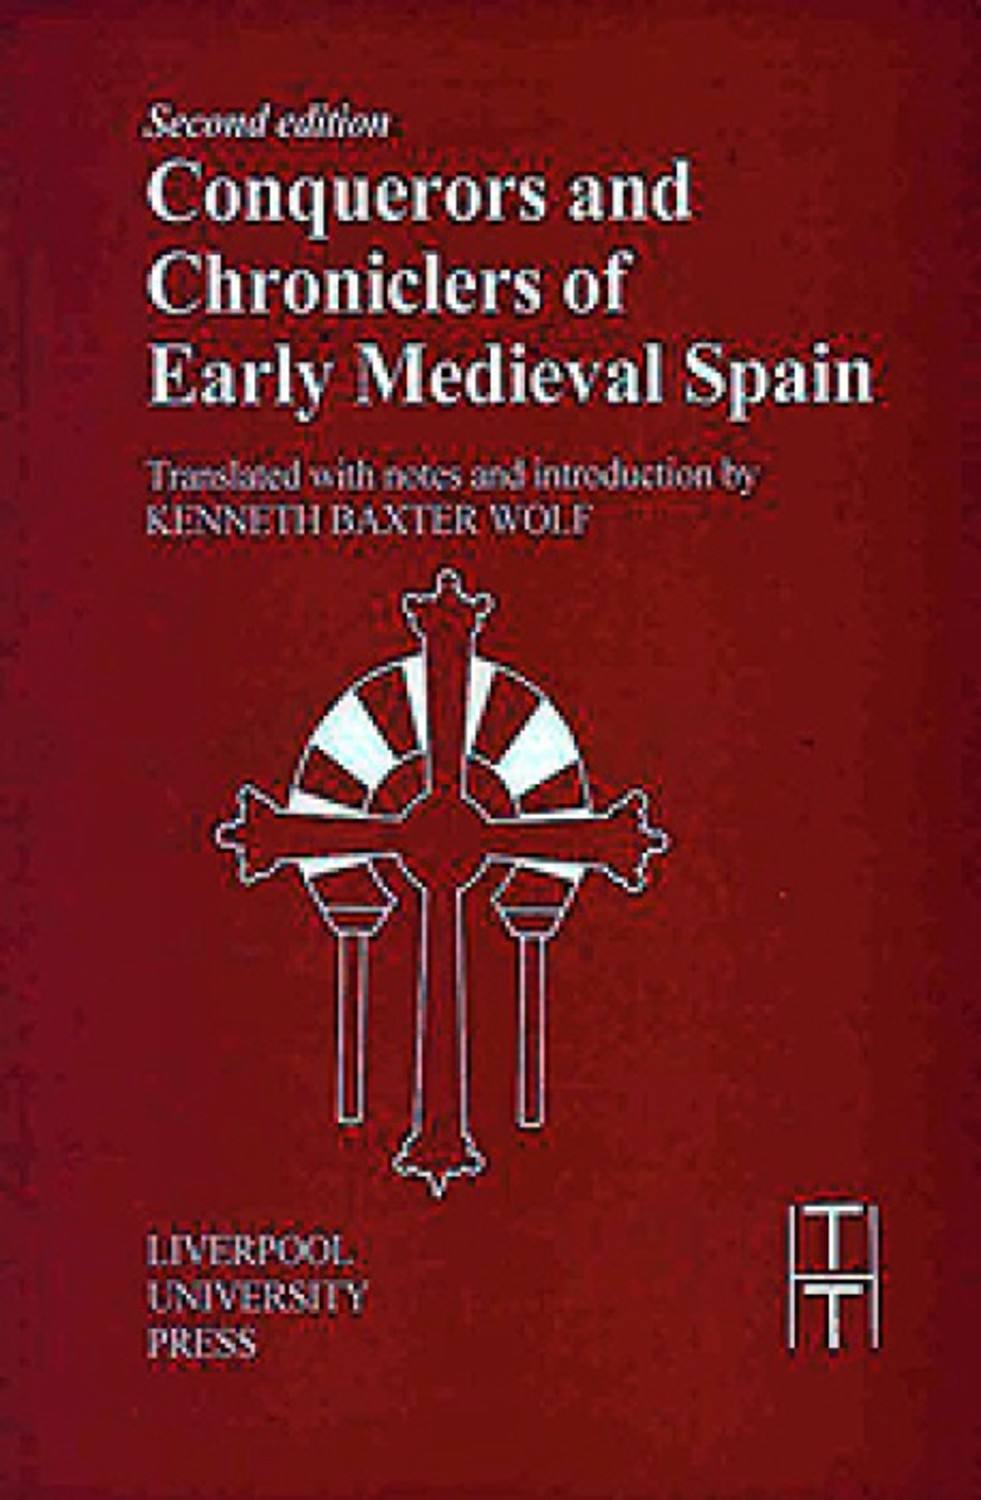 Conquerors and Chroniclers of Early Medieval Spain